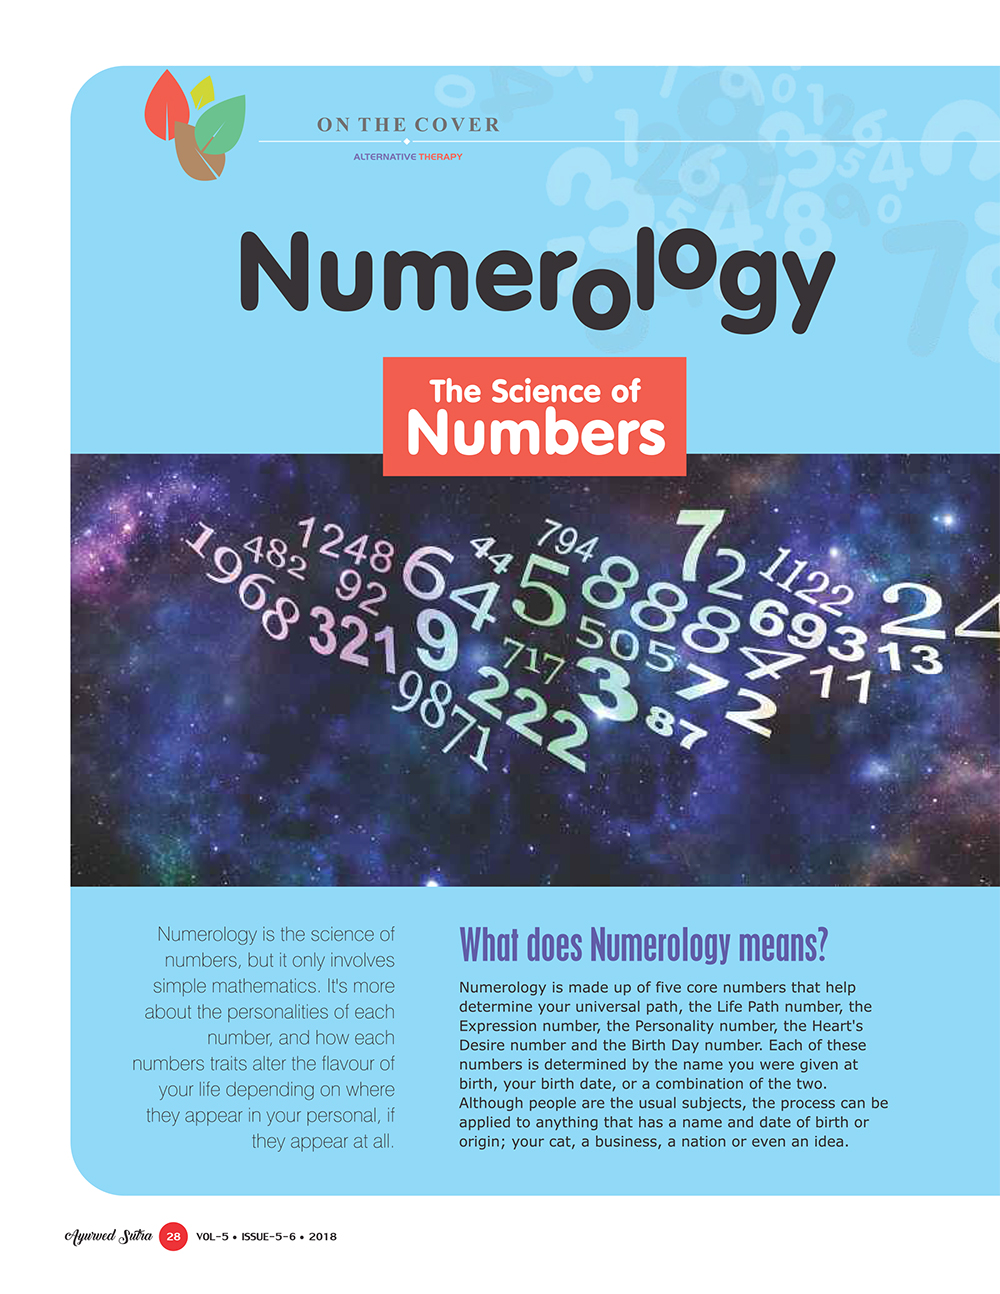 Ayurvedsutra Vol 05 issue 05 06 30 - Numerology: The Science of Numbers